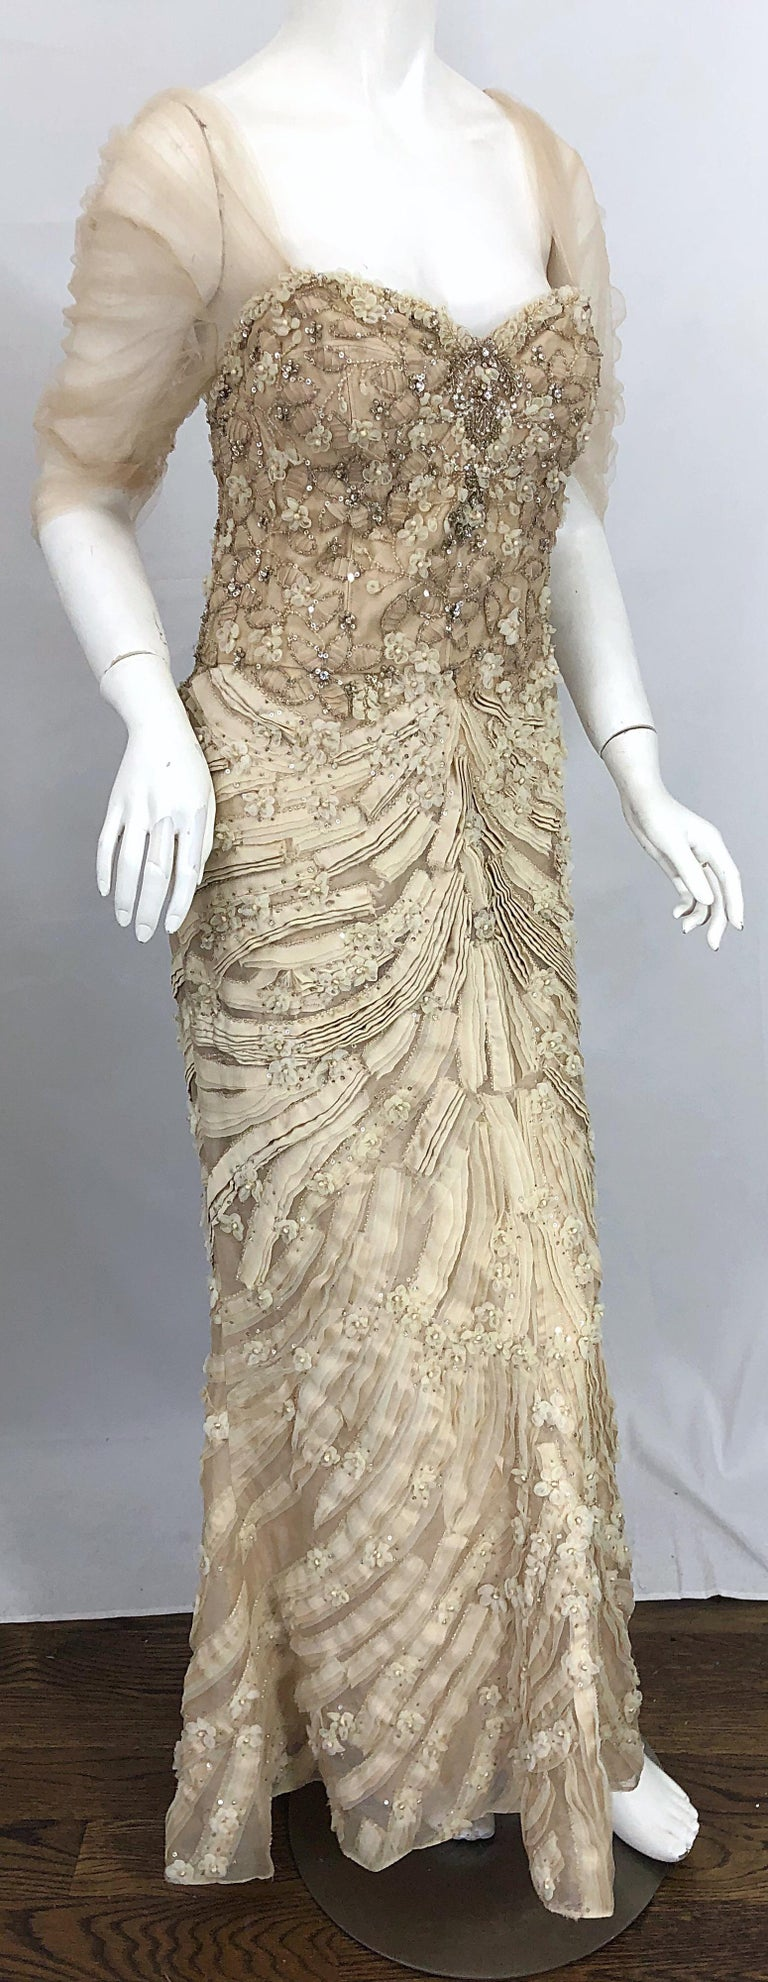 Monique Lhuillier Couture Size 10 / 12 Beige Rhinestone Beaded $12,000 Silk Gown For Sale 10